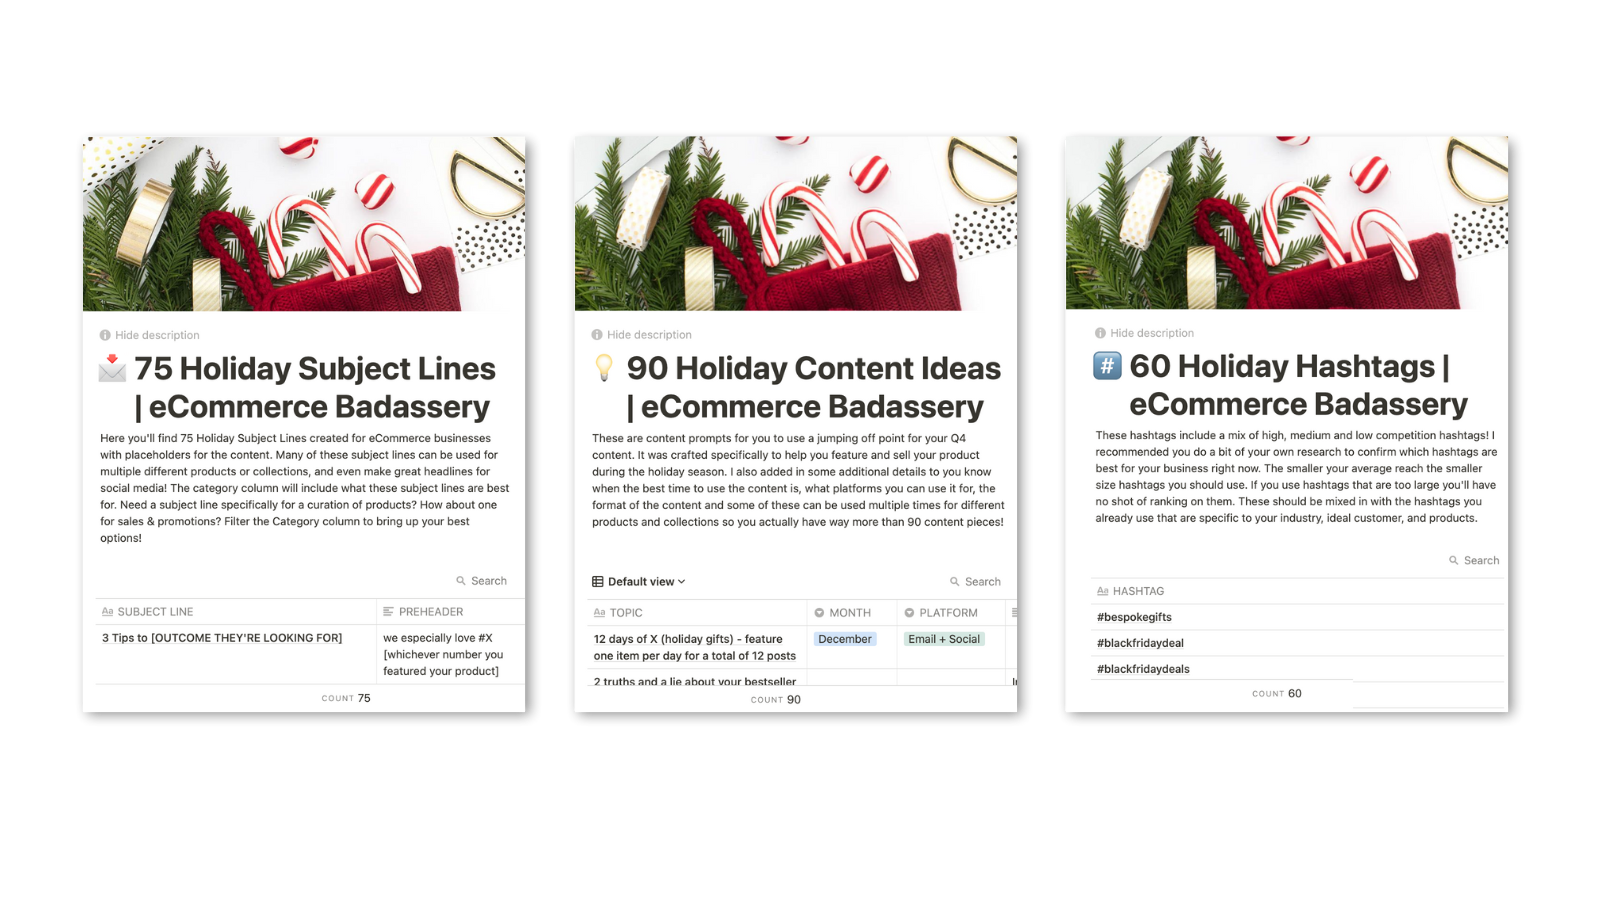 Holiday content prompts and email marketing subject lines for product-based businesses